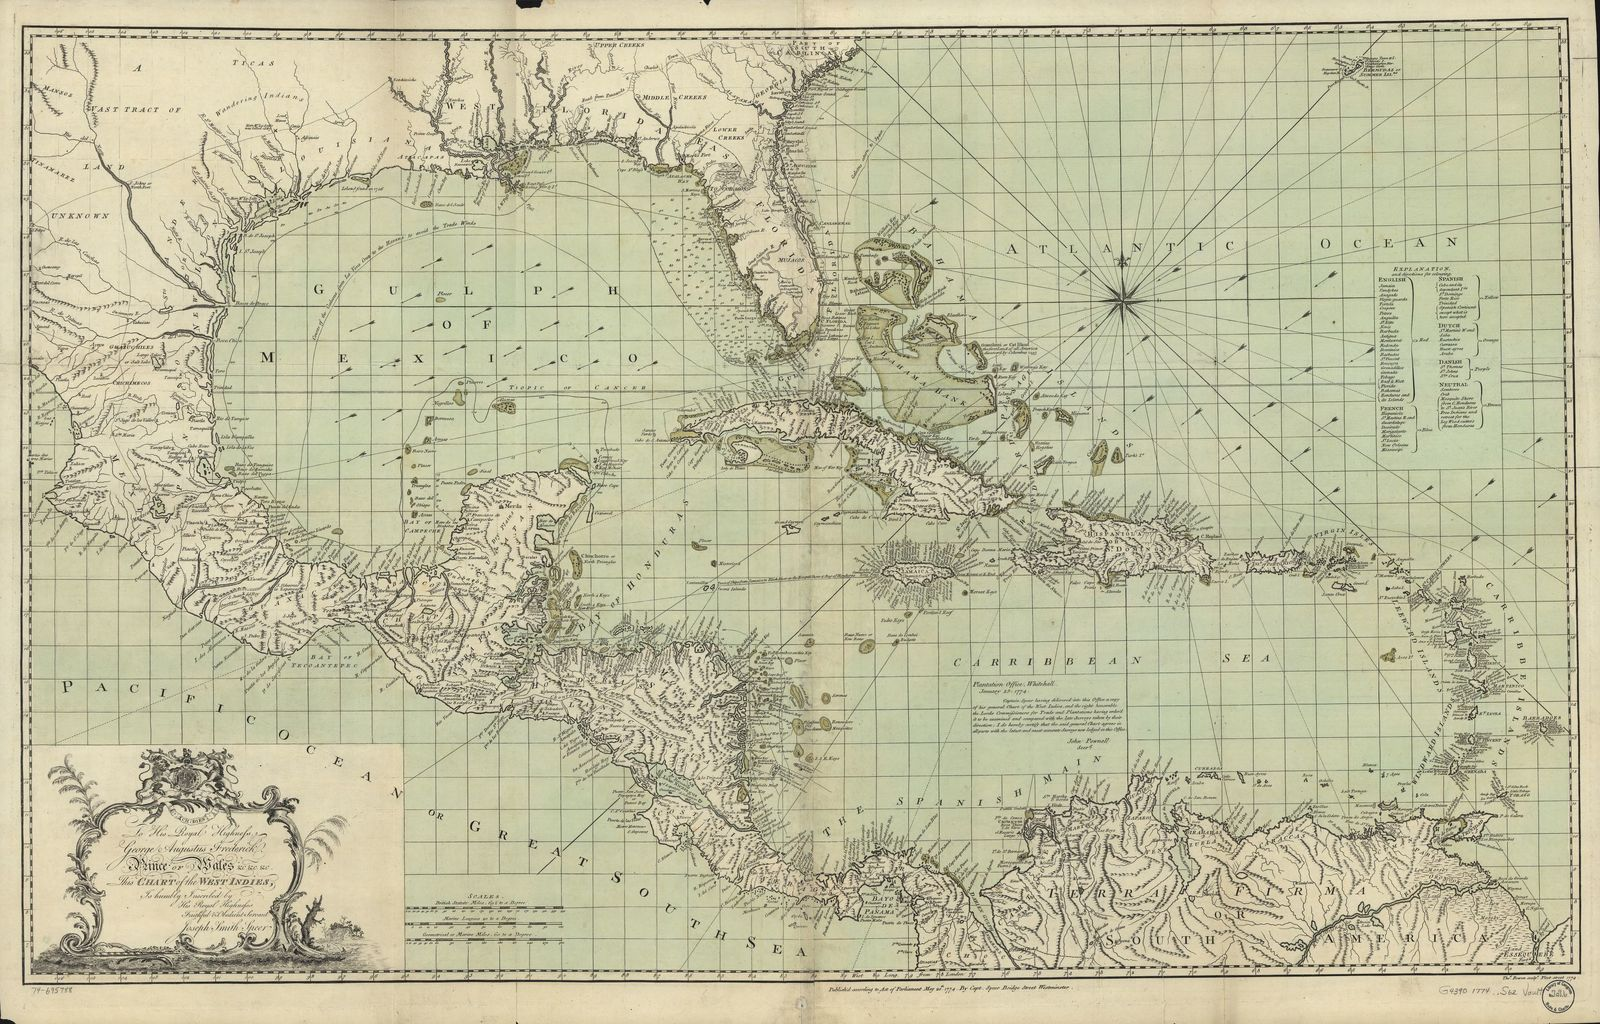 To His Royal Highness. George Augustus Frederick. Prince of Wales &c. &c. &c. This chart of the West Indies,